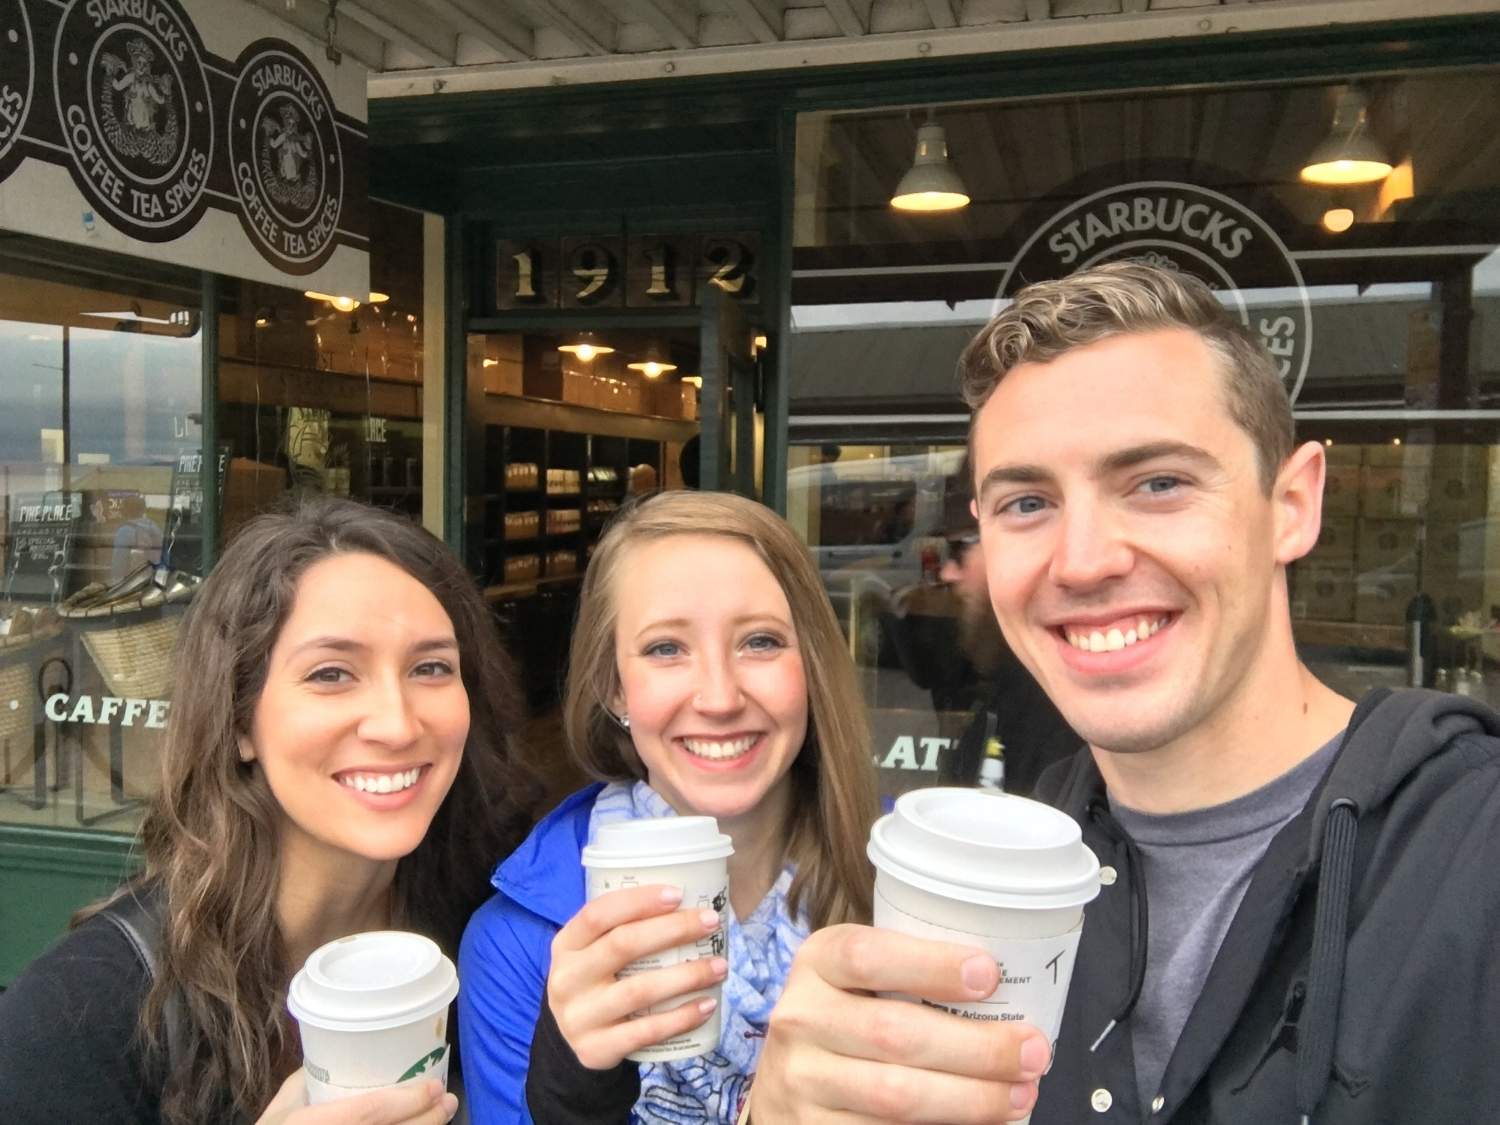 THE ORIGINAL STARBUCKS, SEATTLE